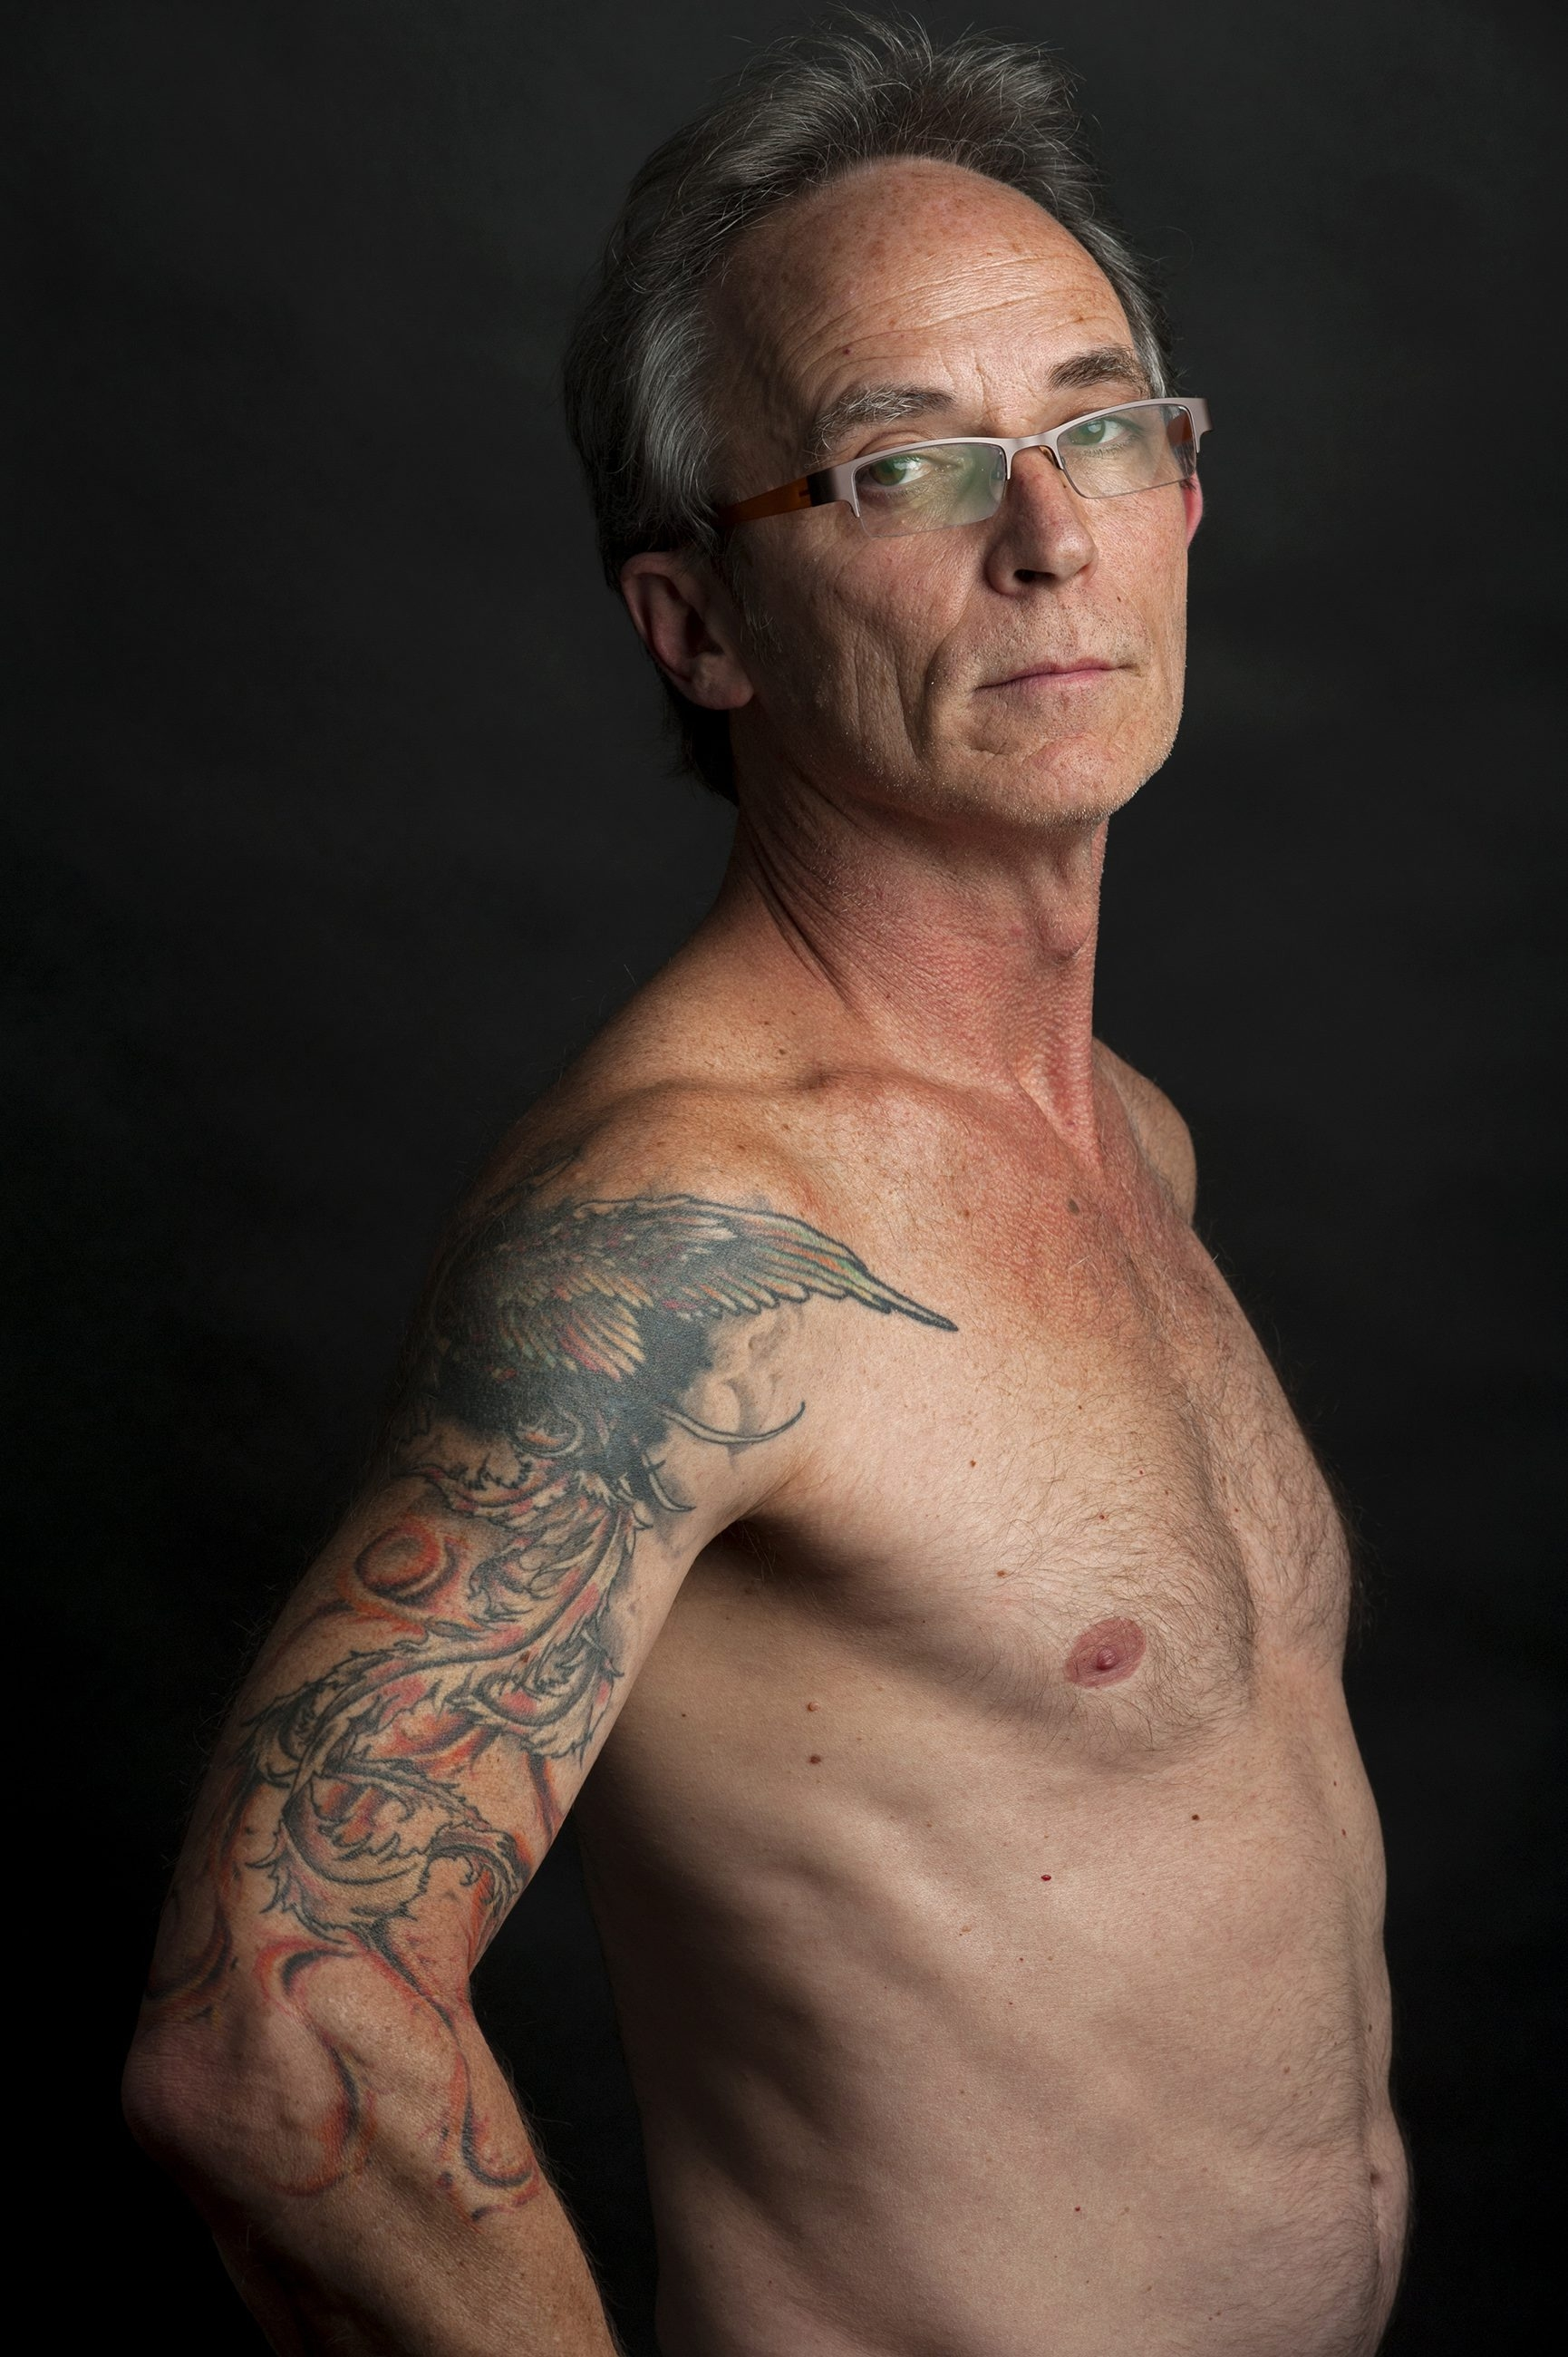 Baltimore resident Dan Whitson, 55, started getting tattoos at the age of 46.